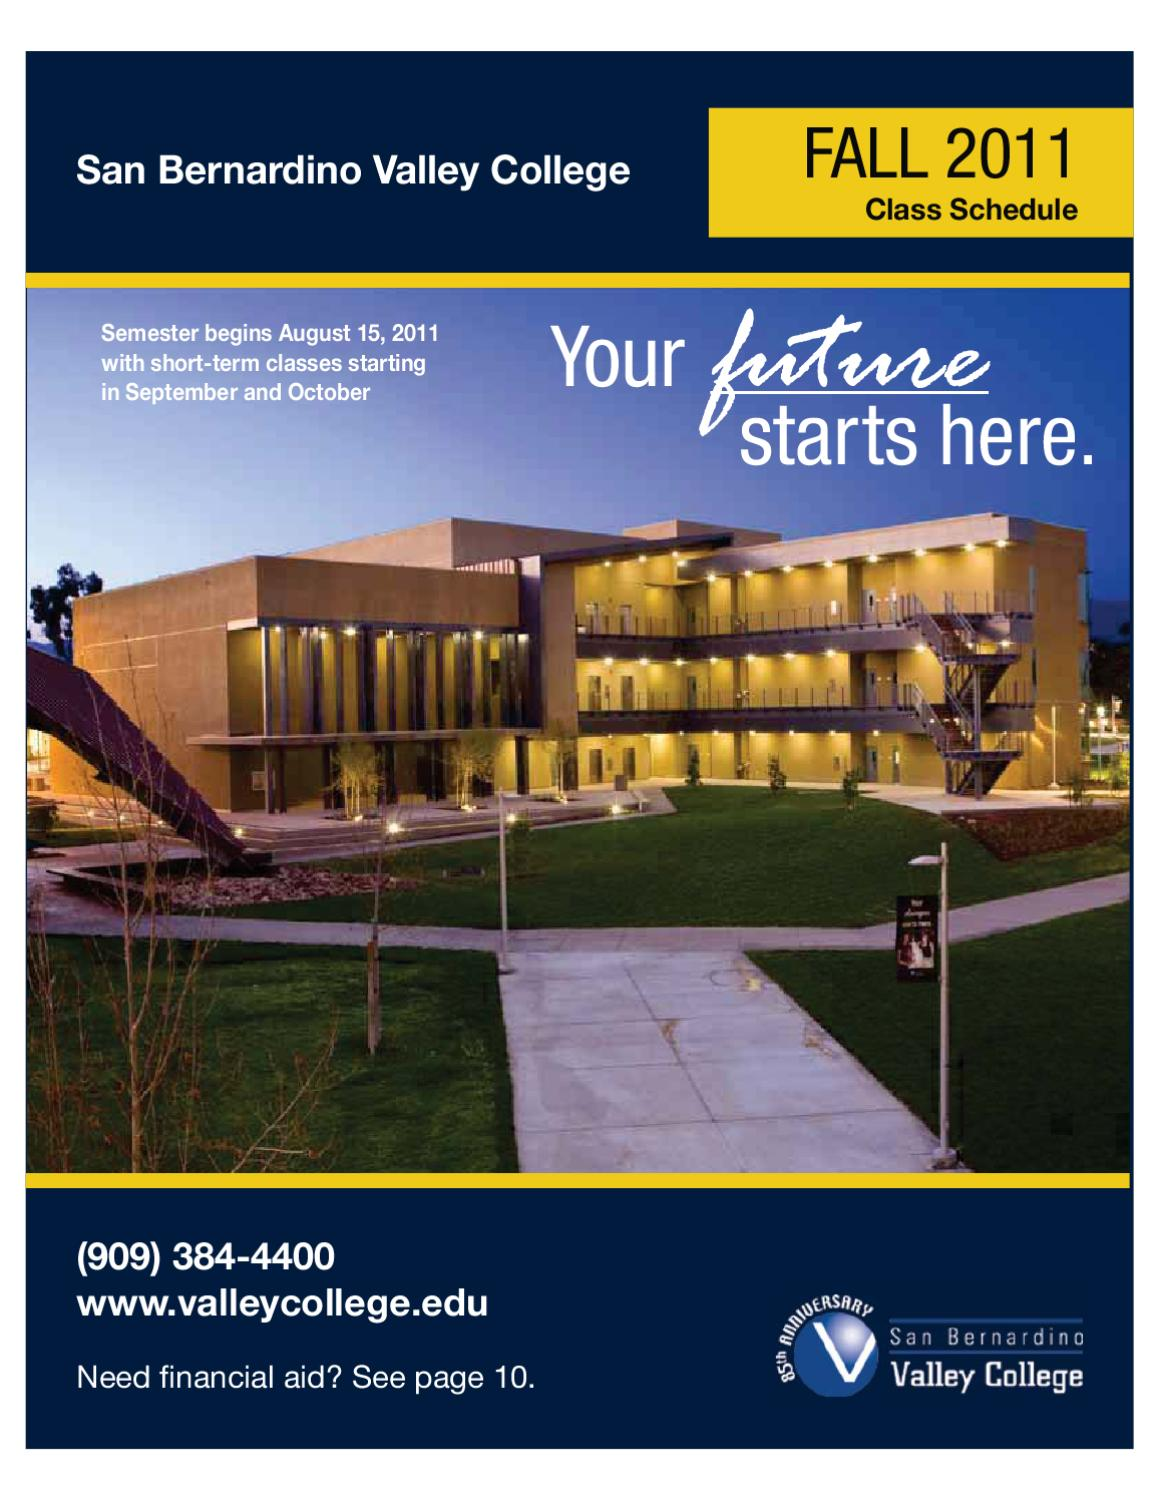 SBVC Fall 2011 Cl Schedule by San Bernardino Valley ... San Bernardino Essor Parcel Map on